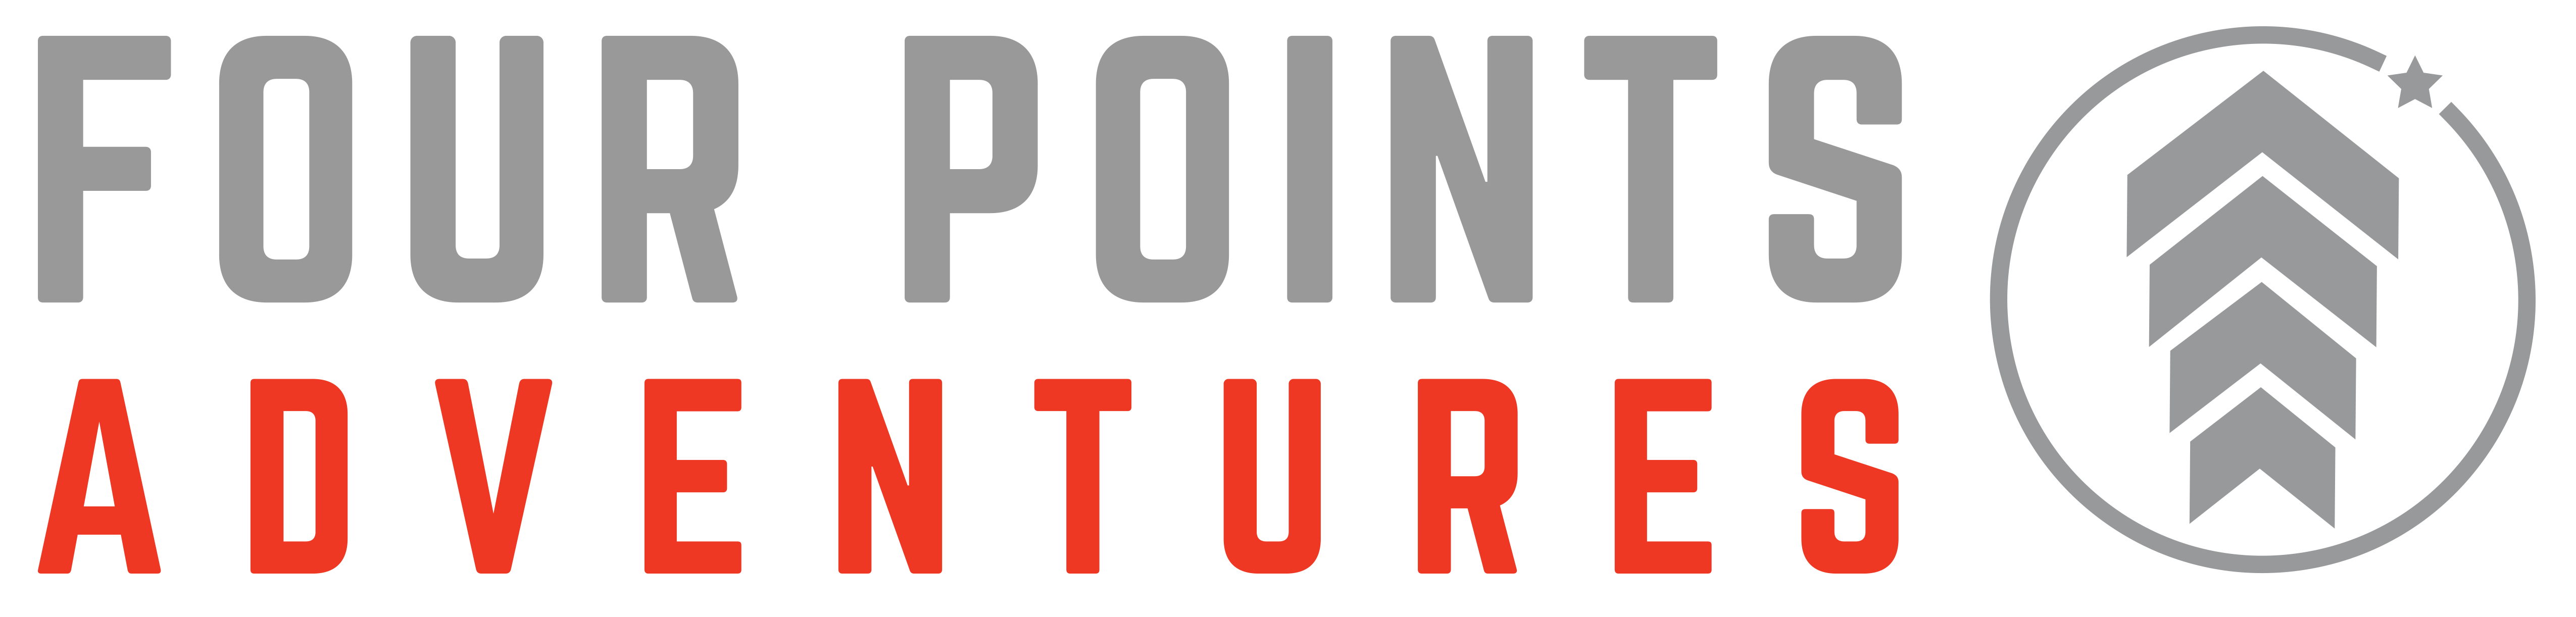 Four_Points_Adventures_logo